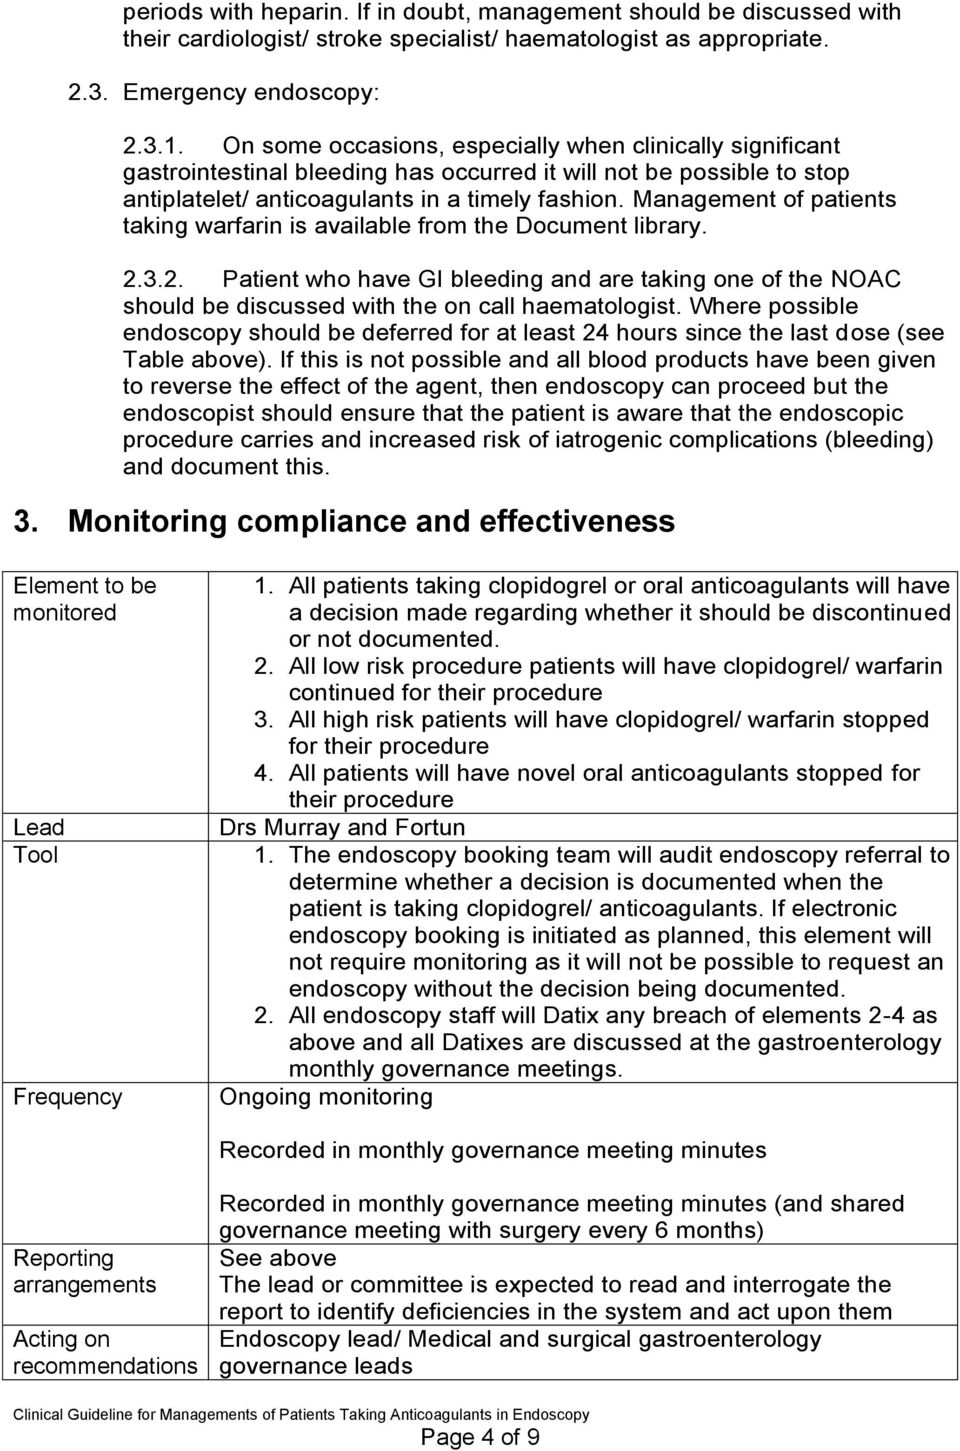 Management of patients taking warfarin is available from the Document library. 2.3.2. Patient who have GI bleeding and are taking one of the NOAC should be discussed with the on call haematologist.